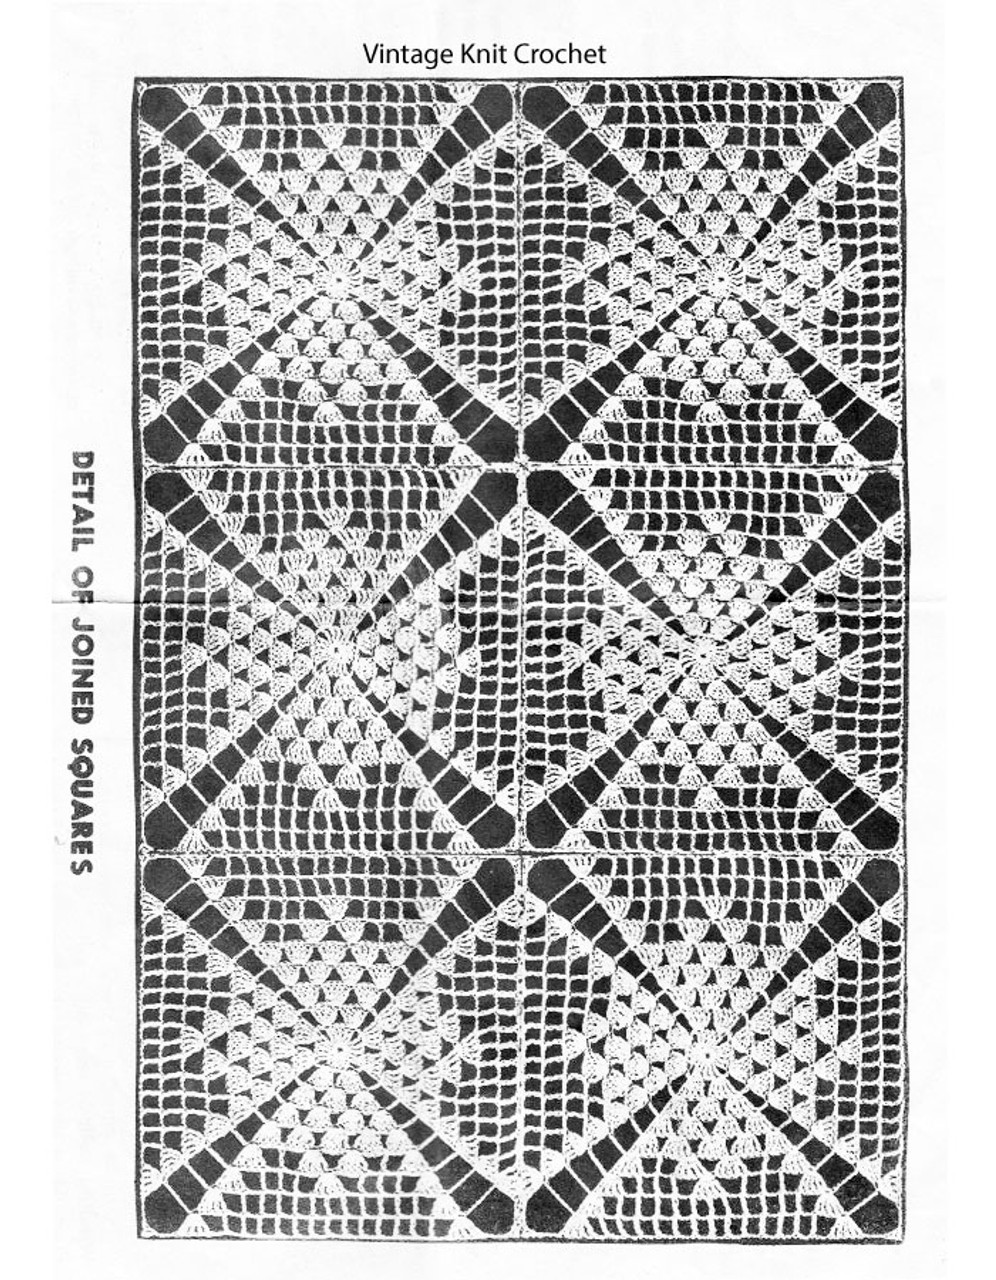 Colonial Crochet Tablecloth Pattern, American Weekly 3150